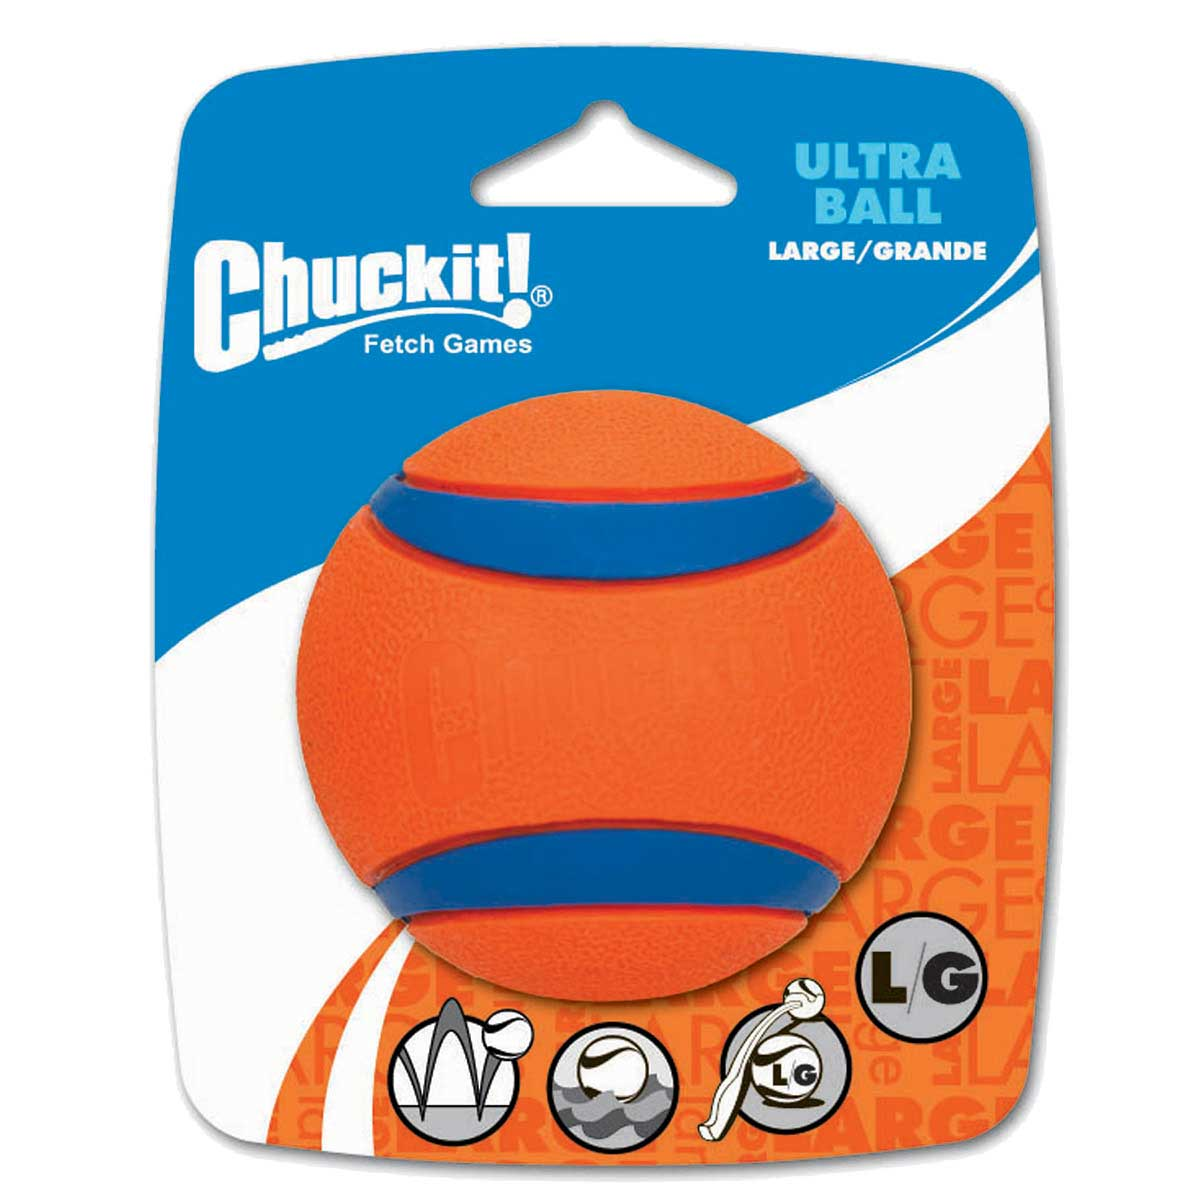 Chuckit! Ultra Ball Large 1 Pack in packaging